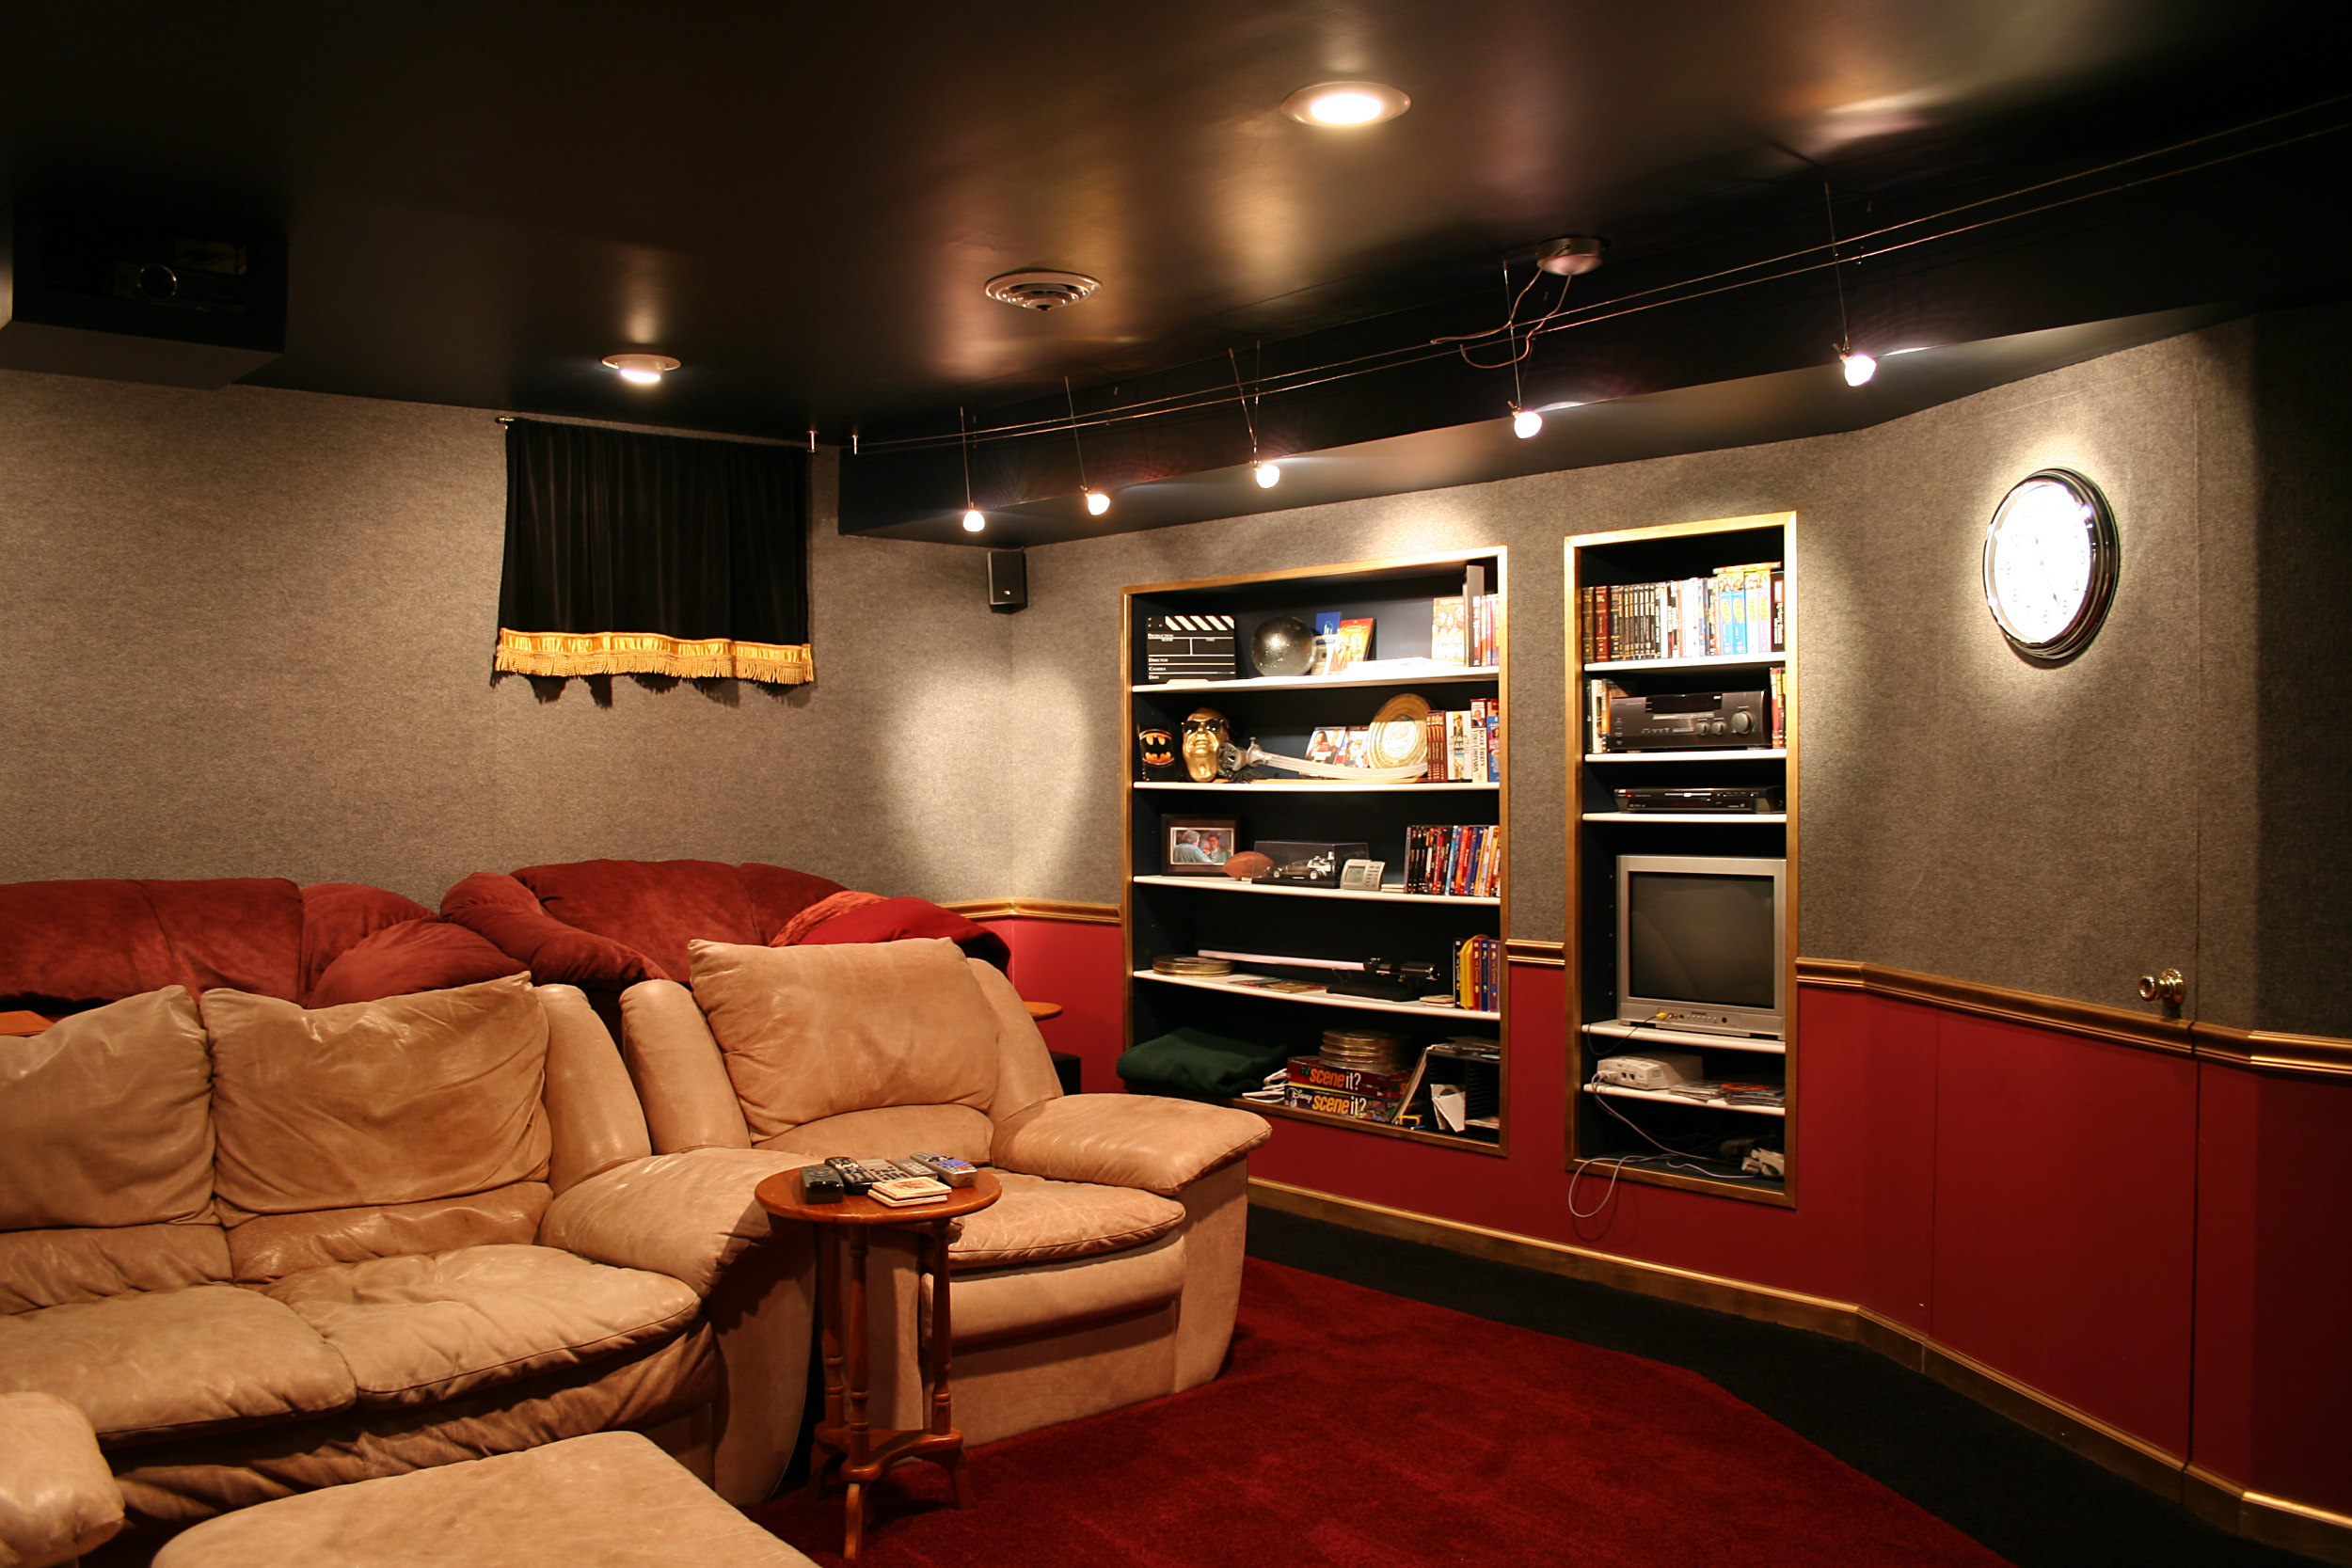 The 25 Most Amazing Home Theater Systems